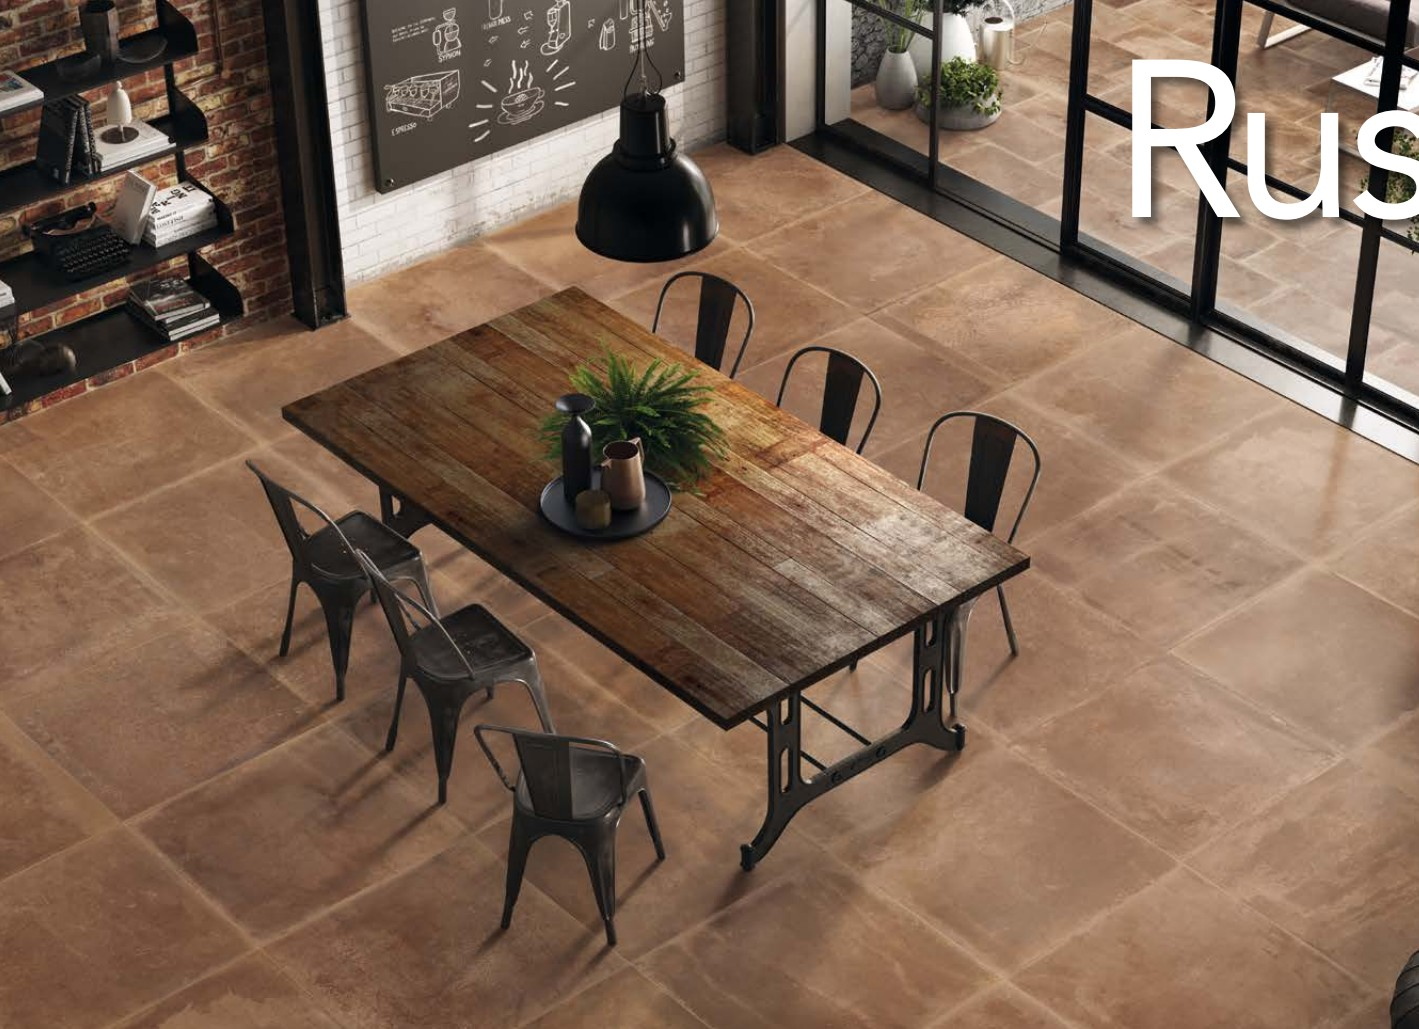 Carrelage provenza s rie dust 60x60 1 choix carrelage for Choix carrelage